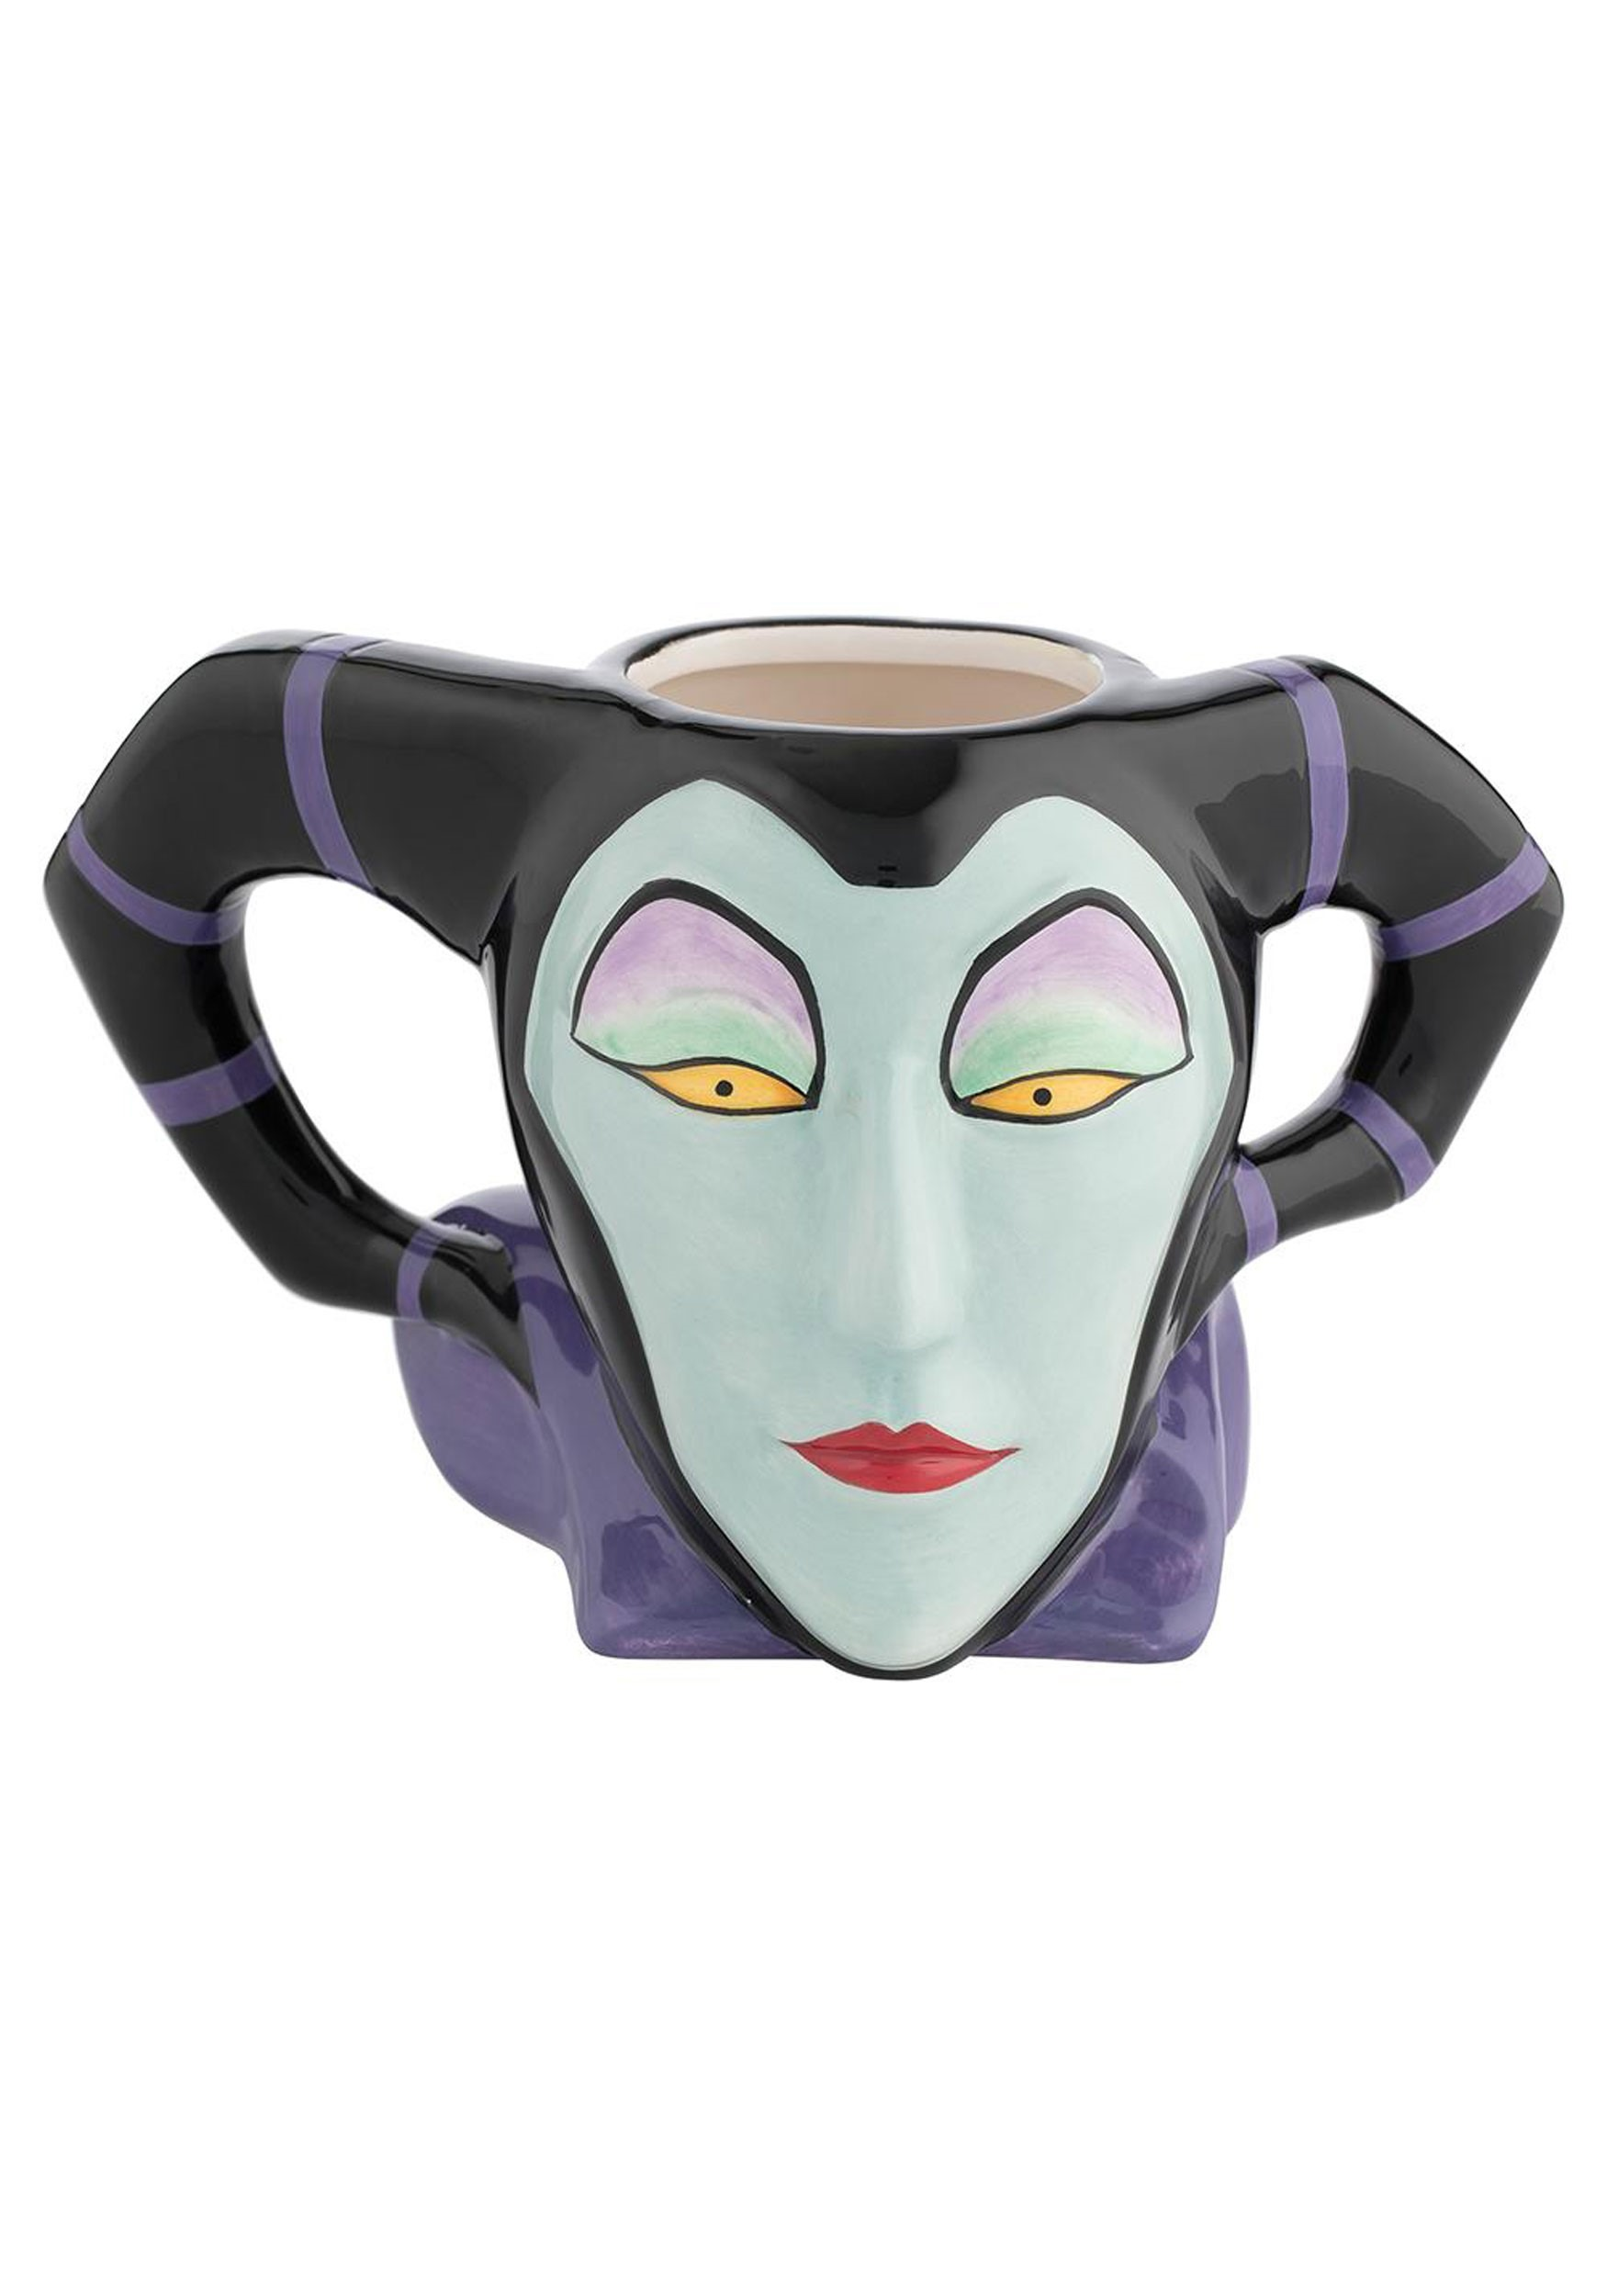 Maleficent Sculpted Ceramic Mug